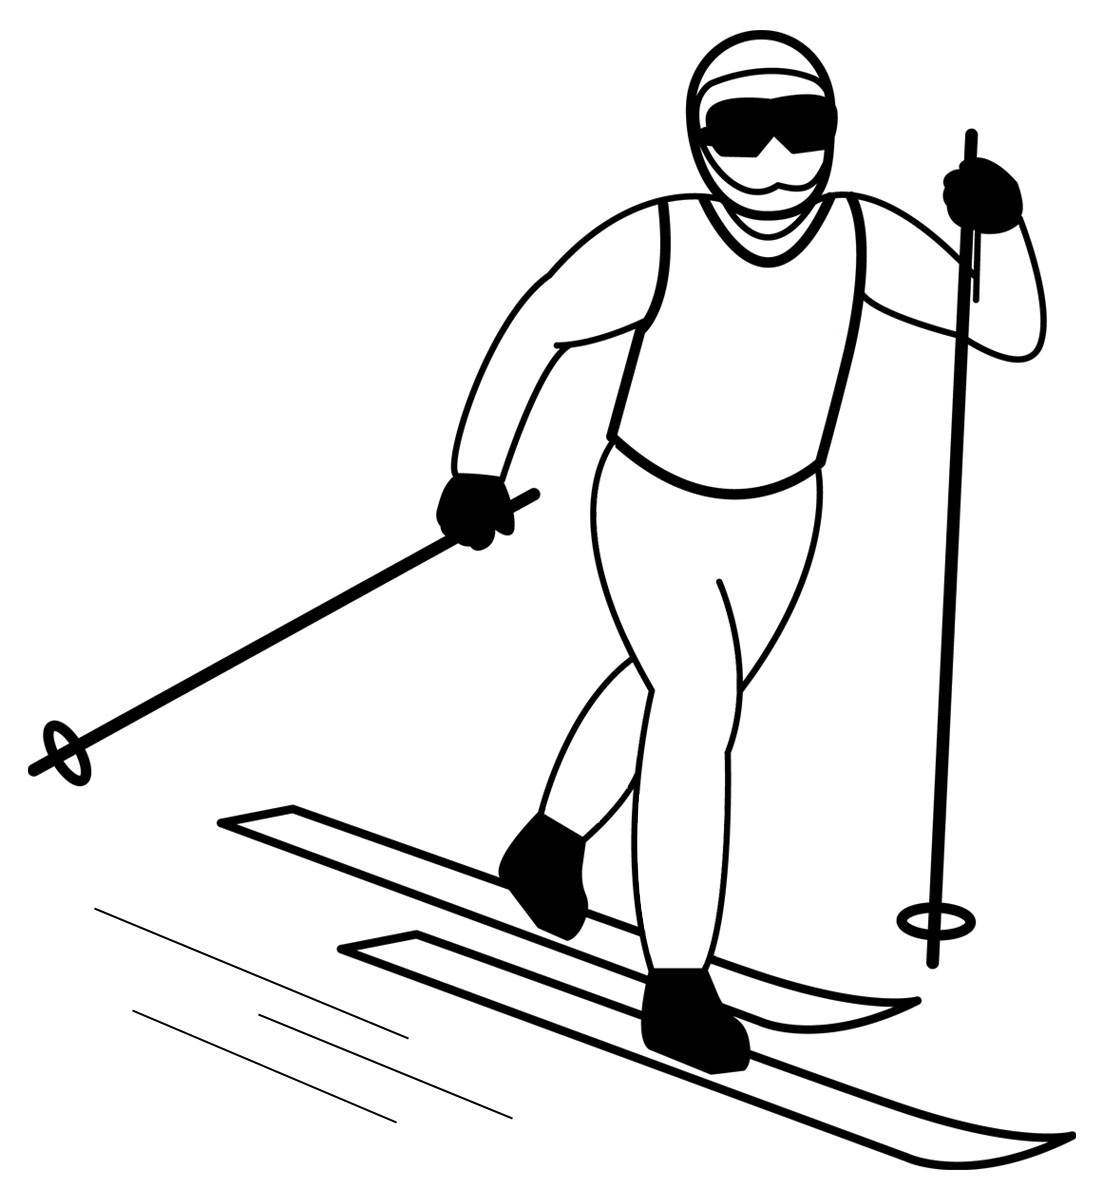 Skiing clipart black and white Free Art Clip Club Free